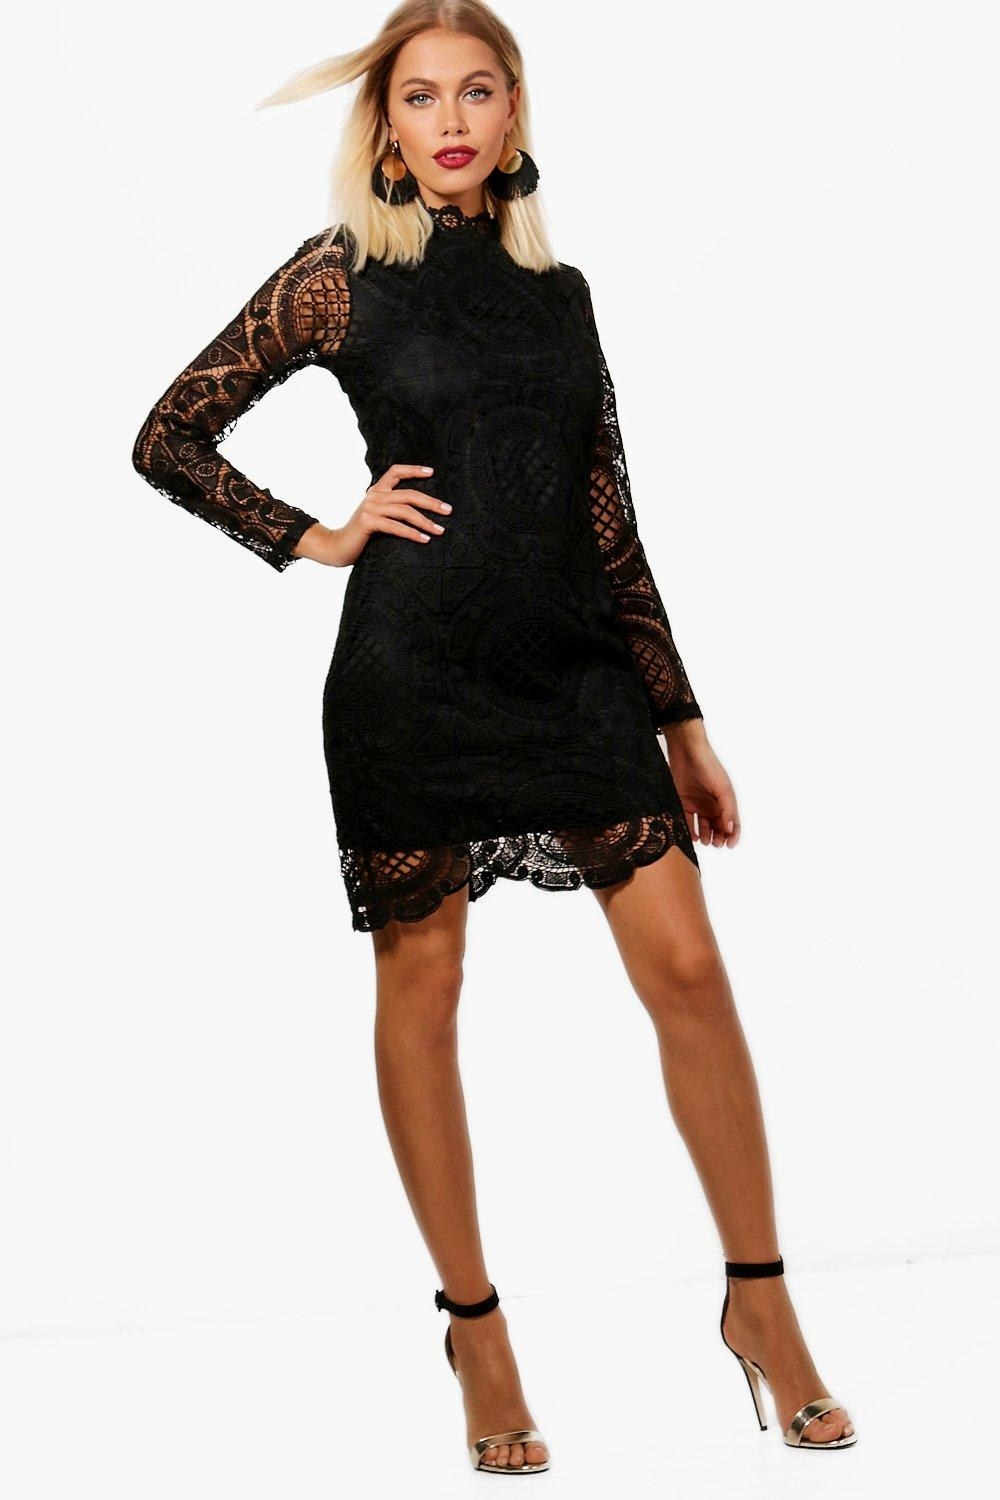 Price: $41 (originally $69; available in sizes 2-10 and in three colors)